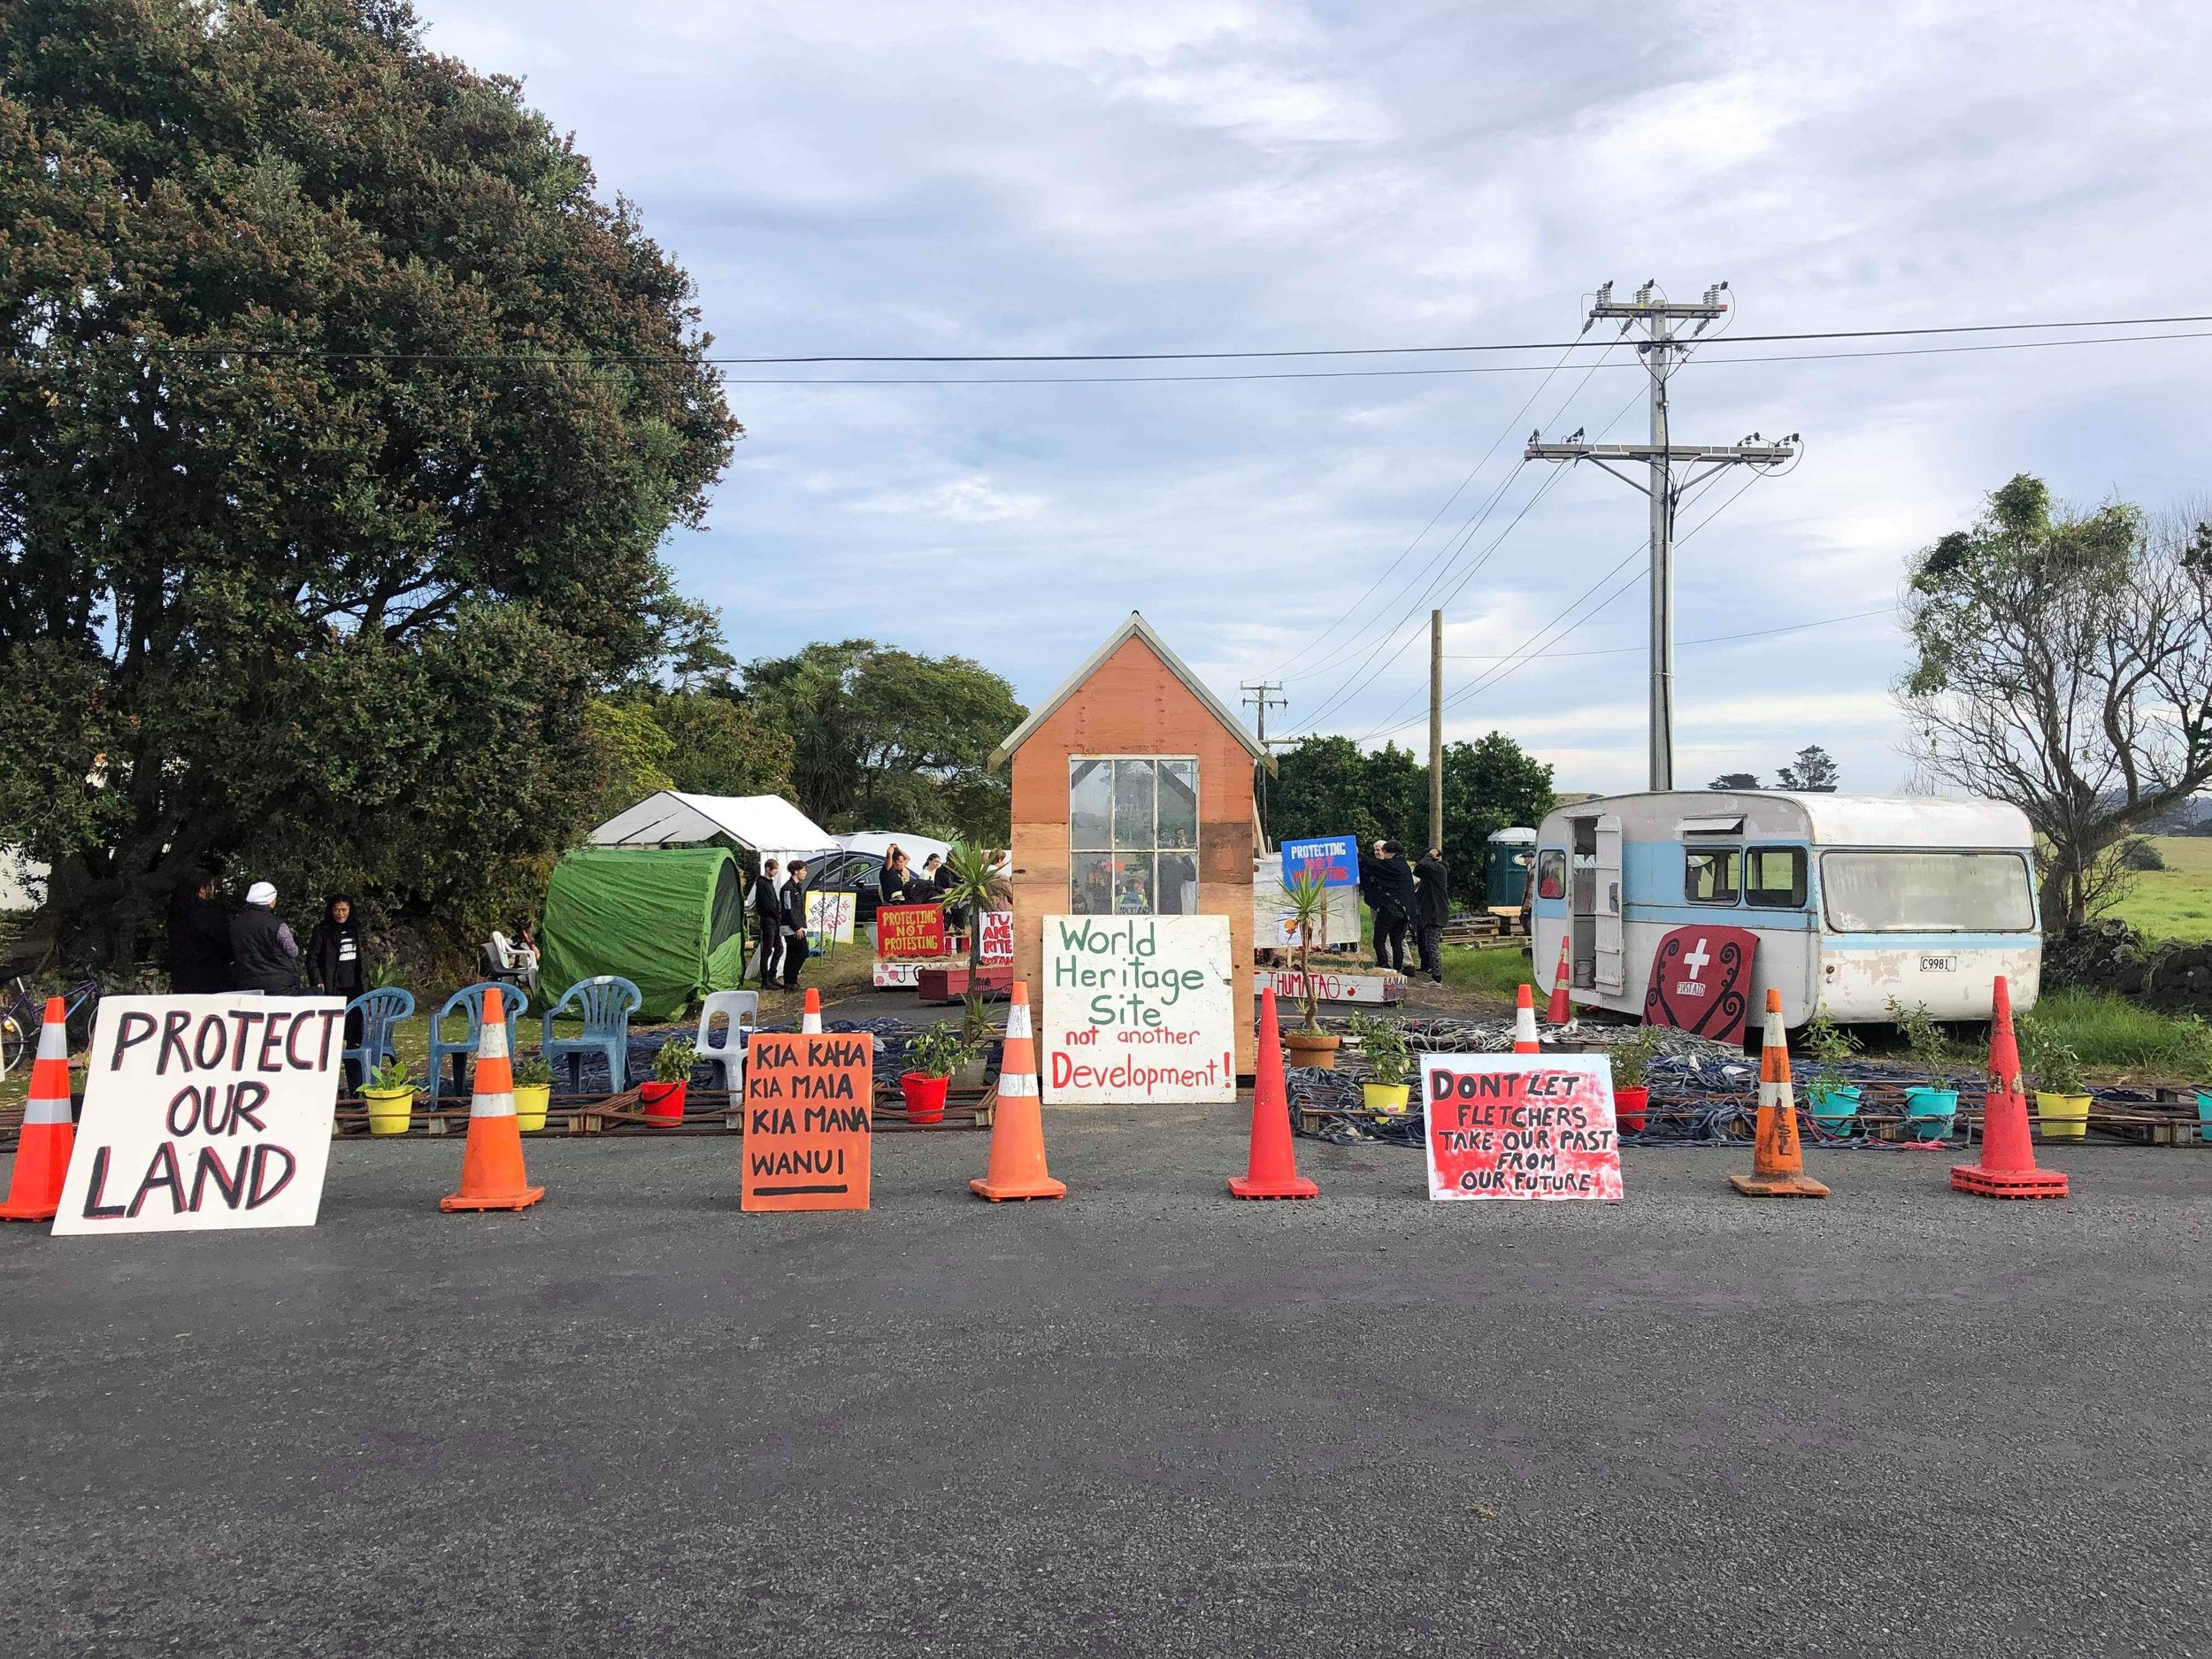 Protestors have been on the road verge at Ihumaatao since 2016, trying to stop the housing development bordering an 800-year-old site rich in Māori history. Photo credit: Tuputau Lelaulu